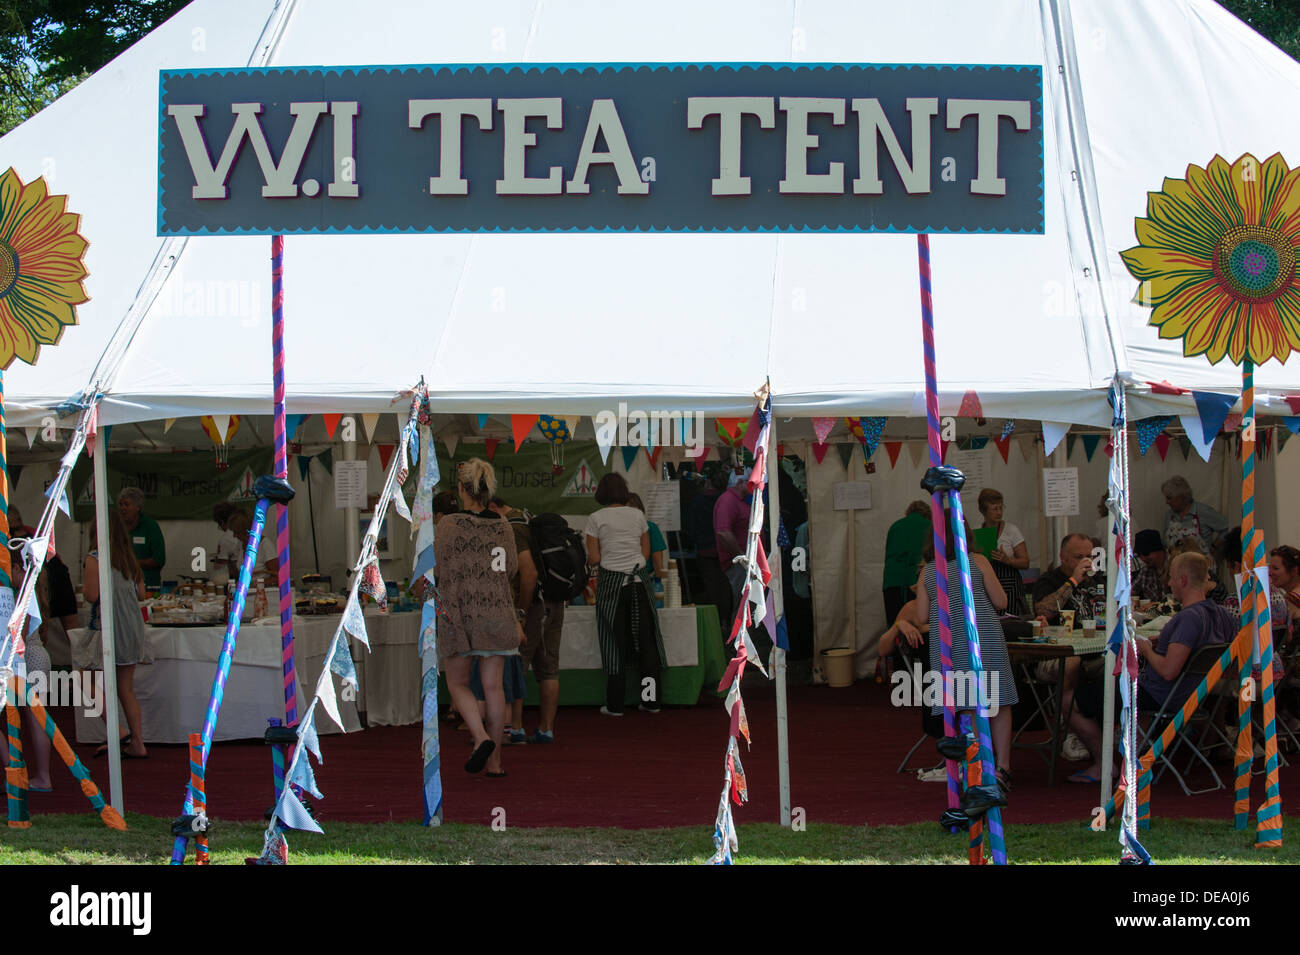 Women's Institute W.I tea tent with a large sign, colourful bunting and people inside at the music festival Camp Bestival - Stock Image